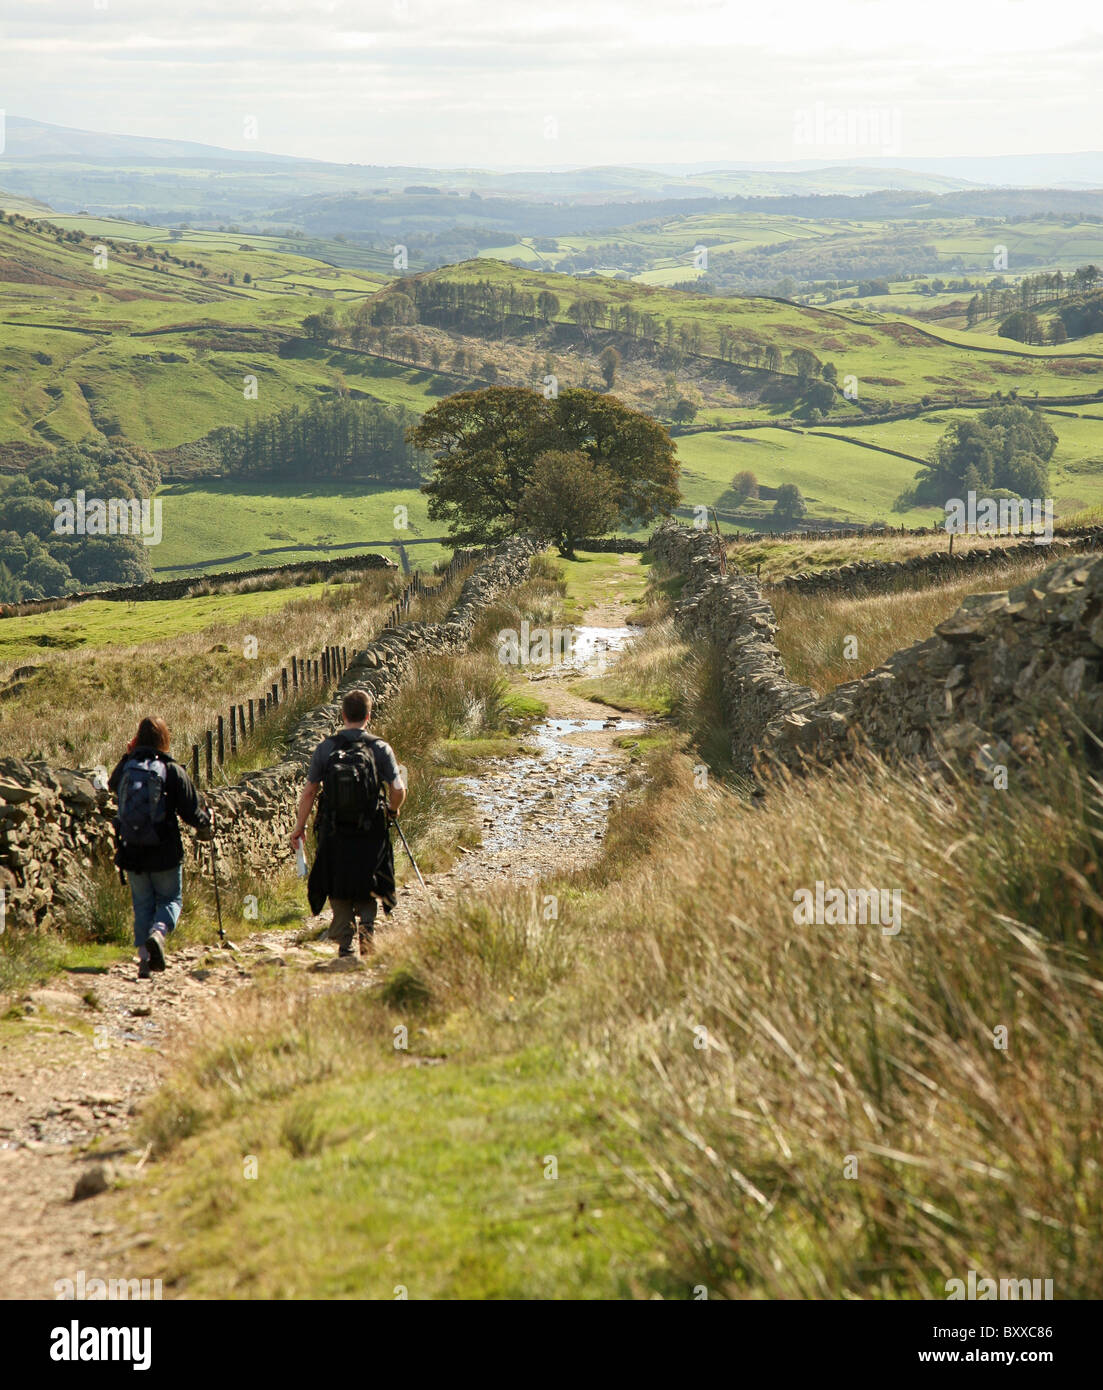 Two walkers or hikers walking down Nanny Lane towards Troutbeck in the English Lake District England UK - Stock Image